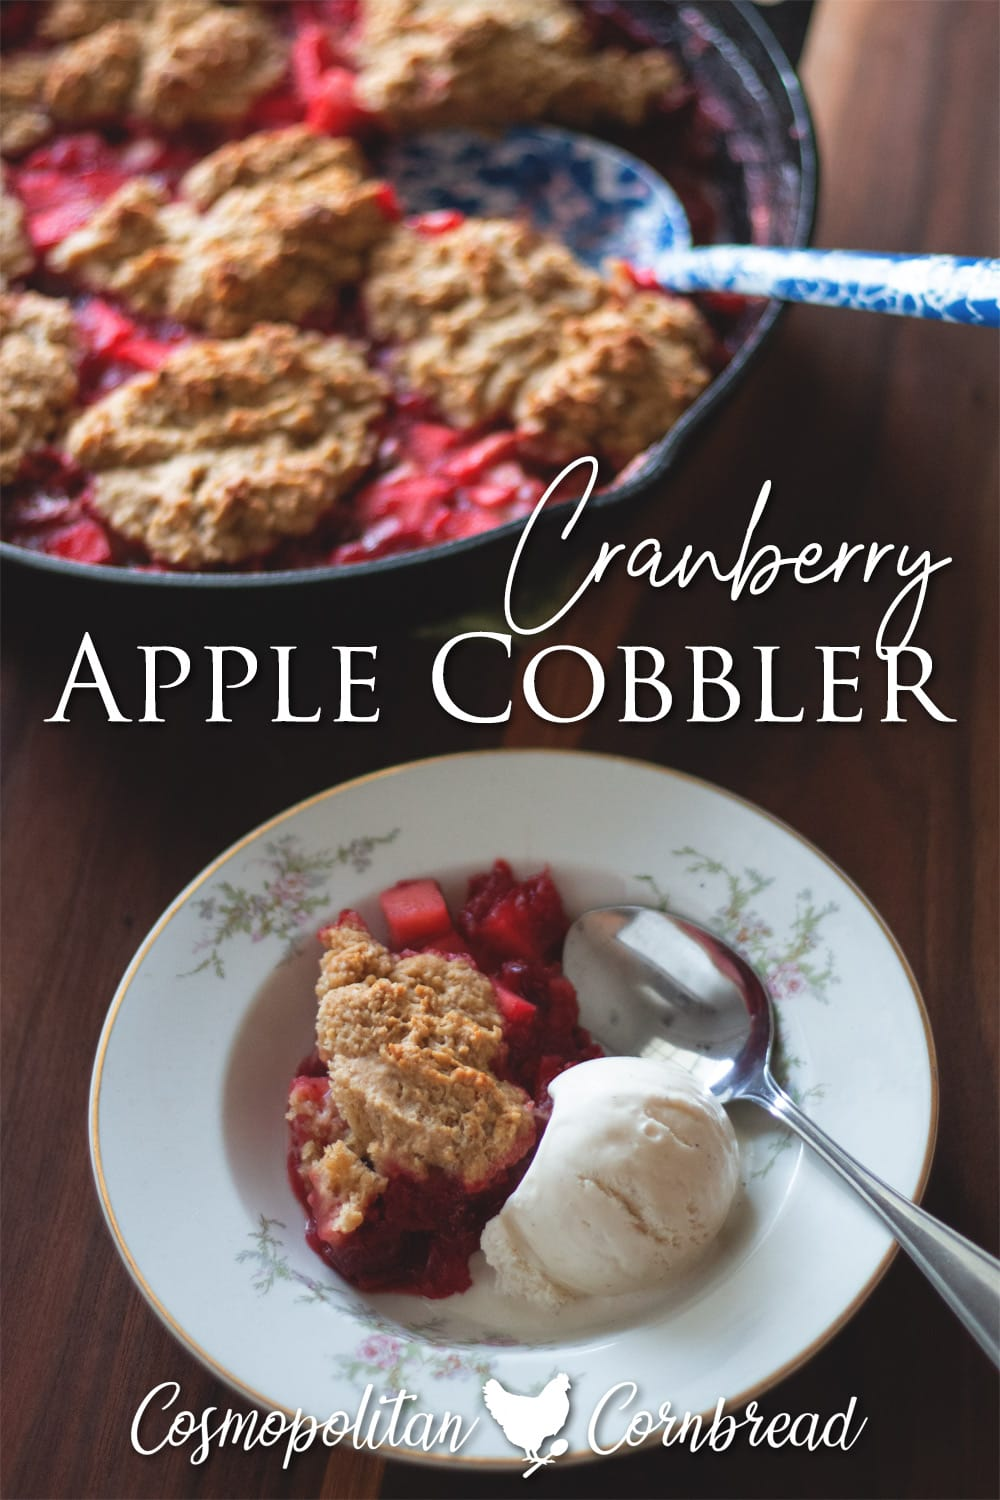 Cranberries, apples and a delicately sweet cake topping will make this old-fashioned cobbler one of your new favorites!